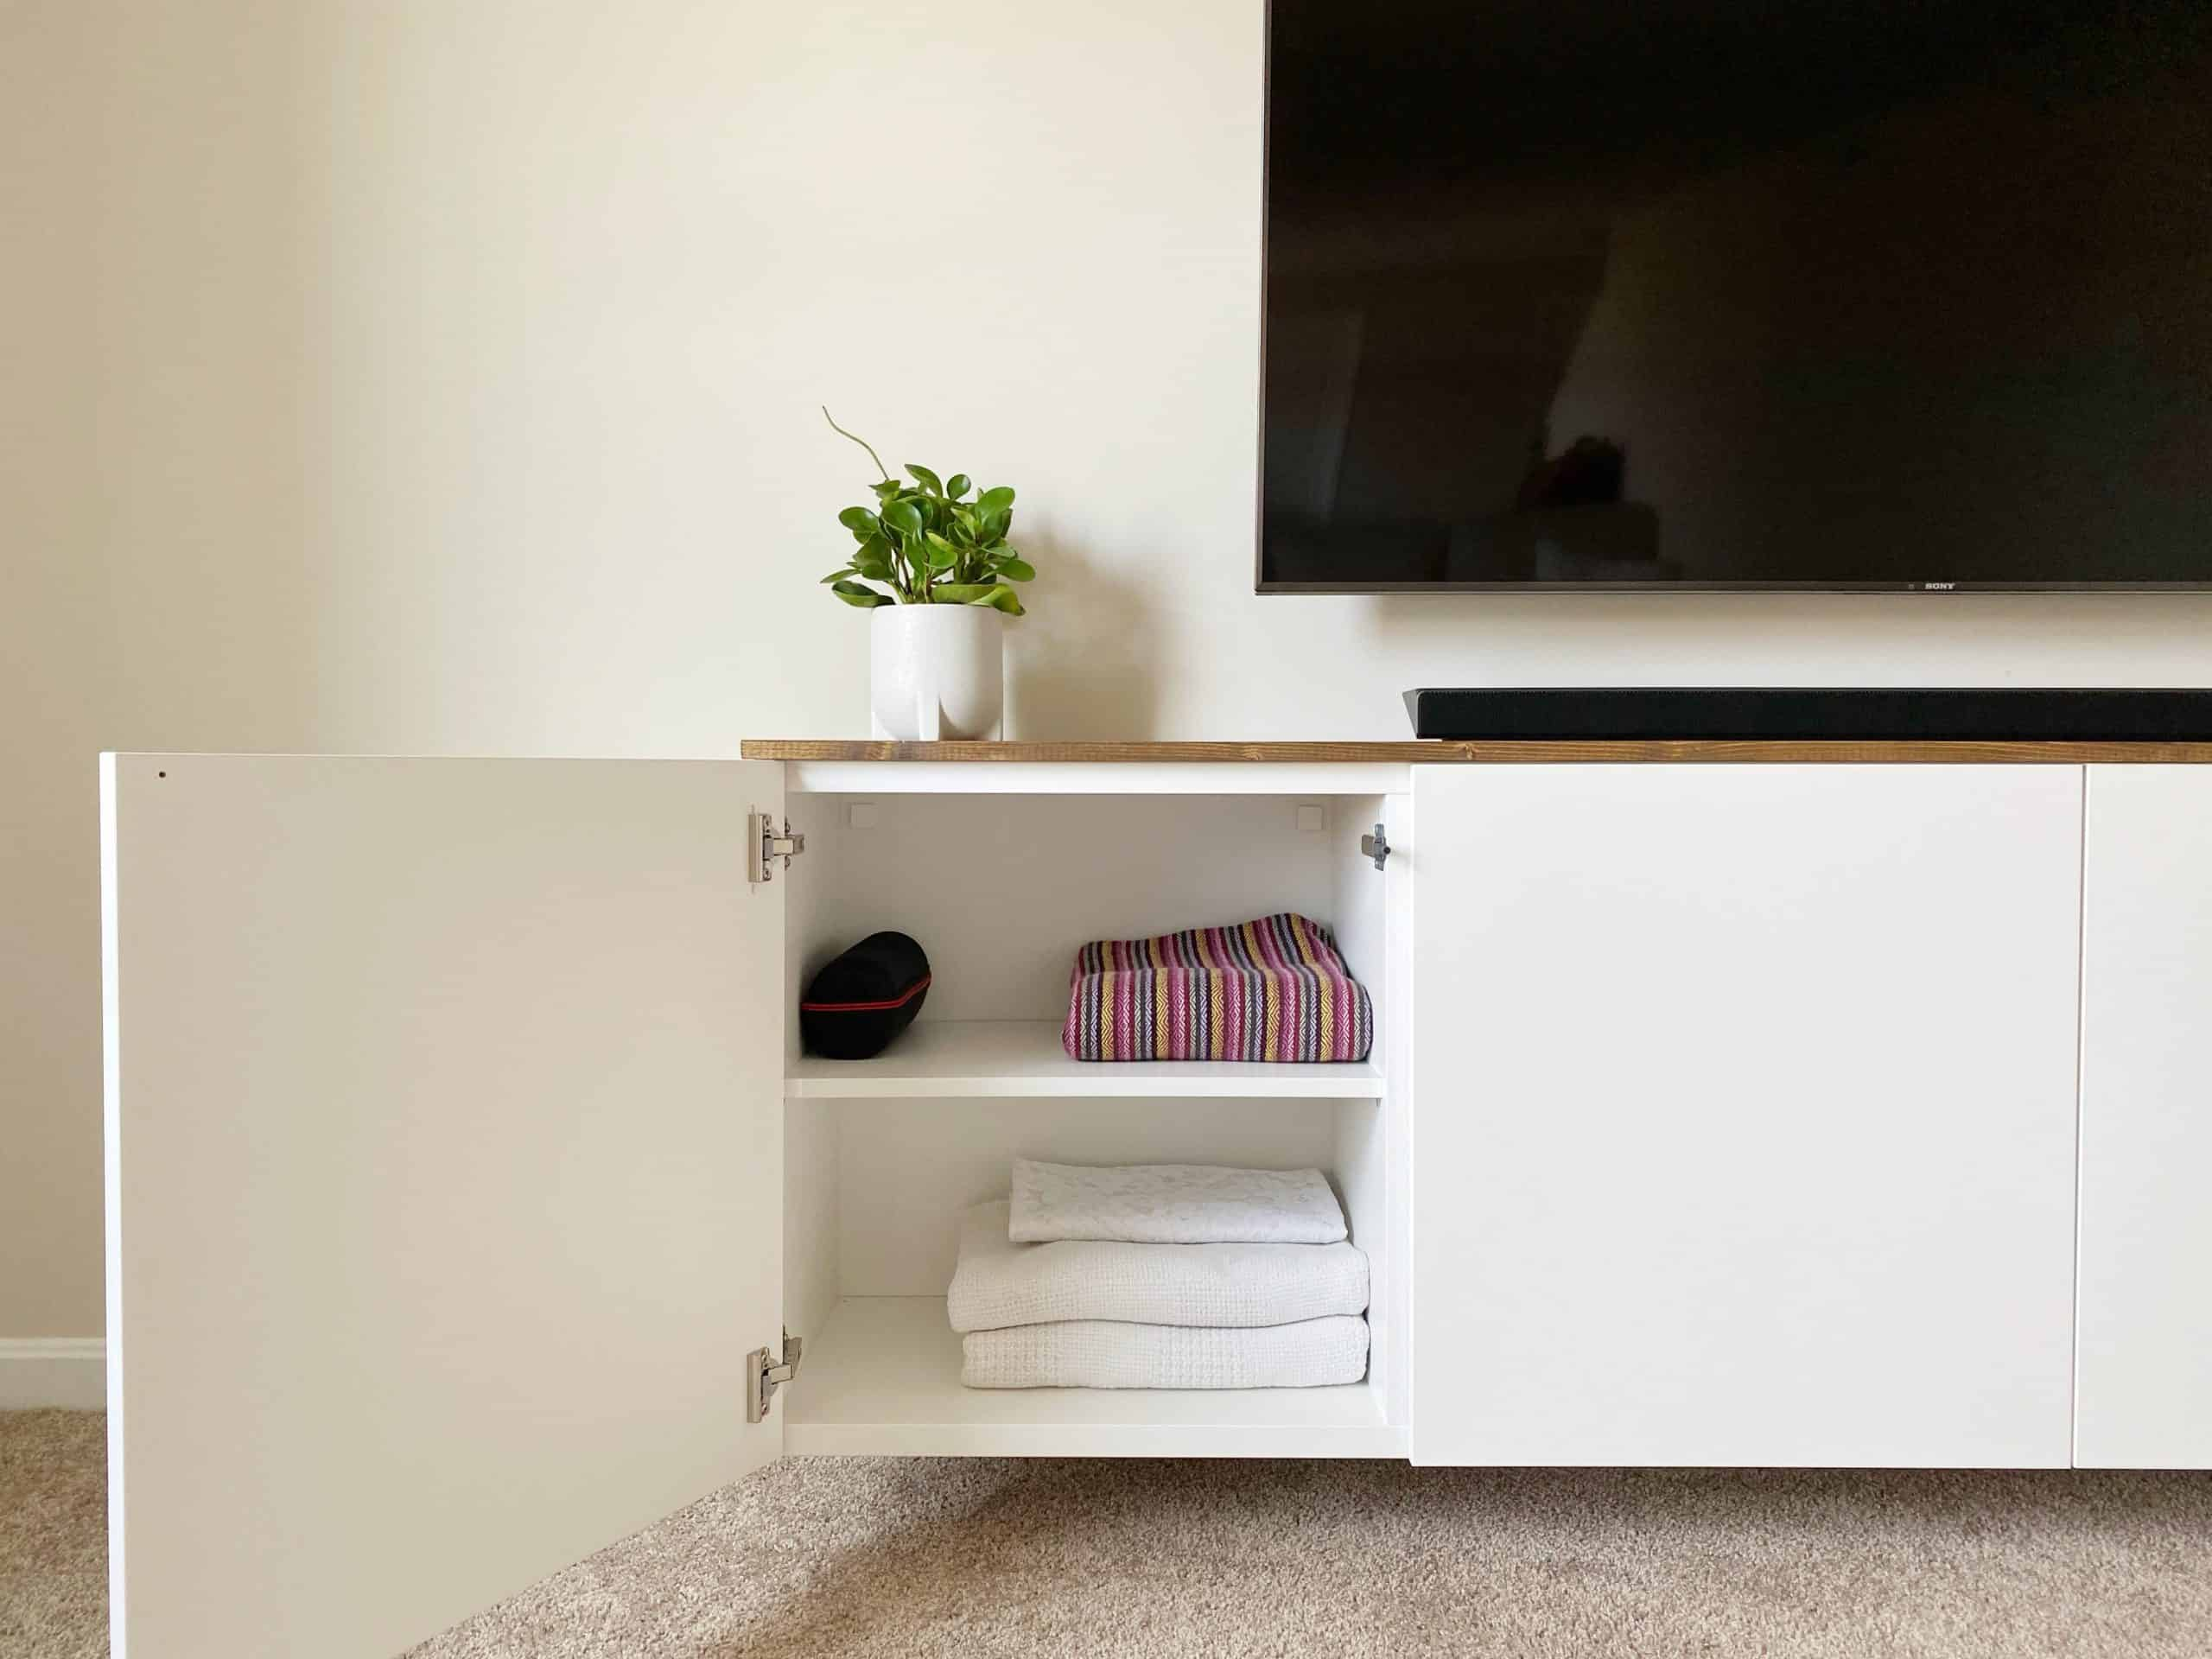 A floating TV console is just one way to maximize storage and organization in a home with children. Learn how to use IKEA's BESTA cabinets to create a super simple floating TV console at www.freeandunfettered.com. It's a sleek and practical piece of furniture for any family room.